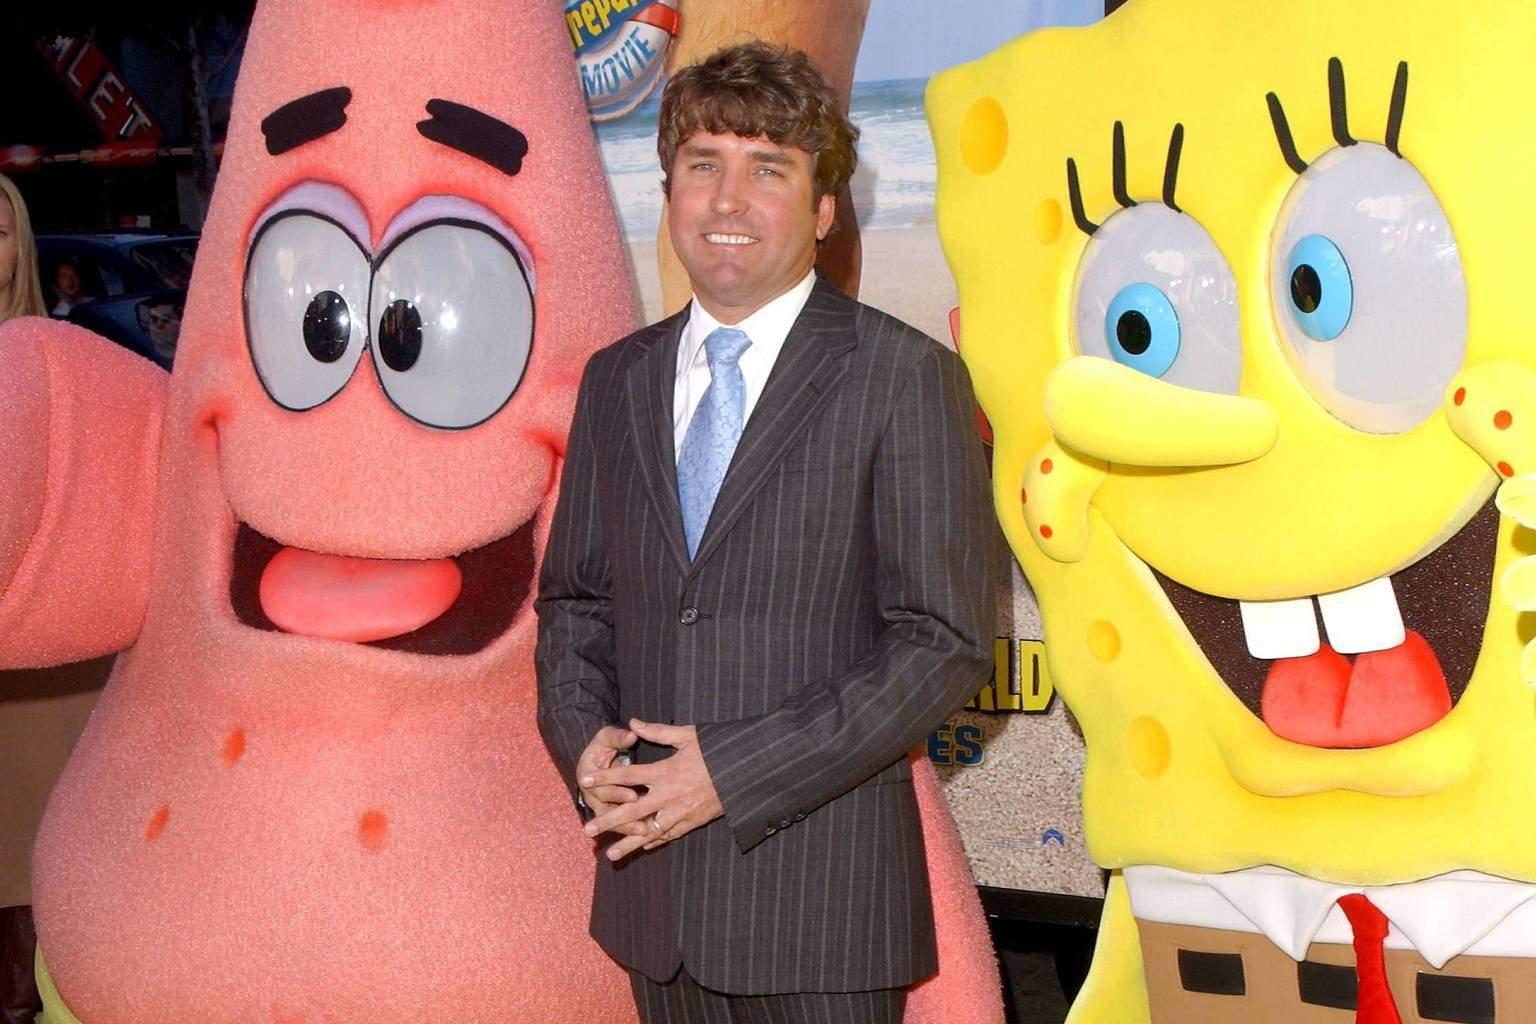 spongebob-squarepants-stephen-hillenburg-died-pics